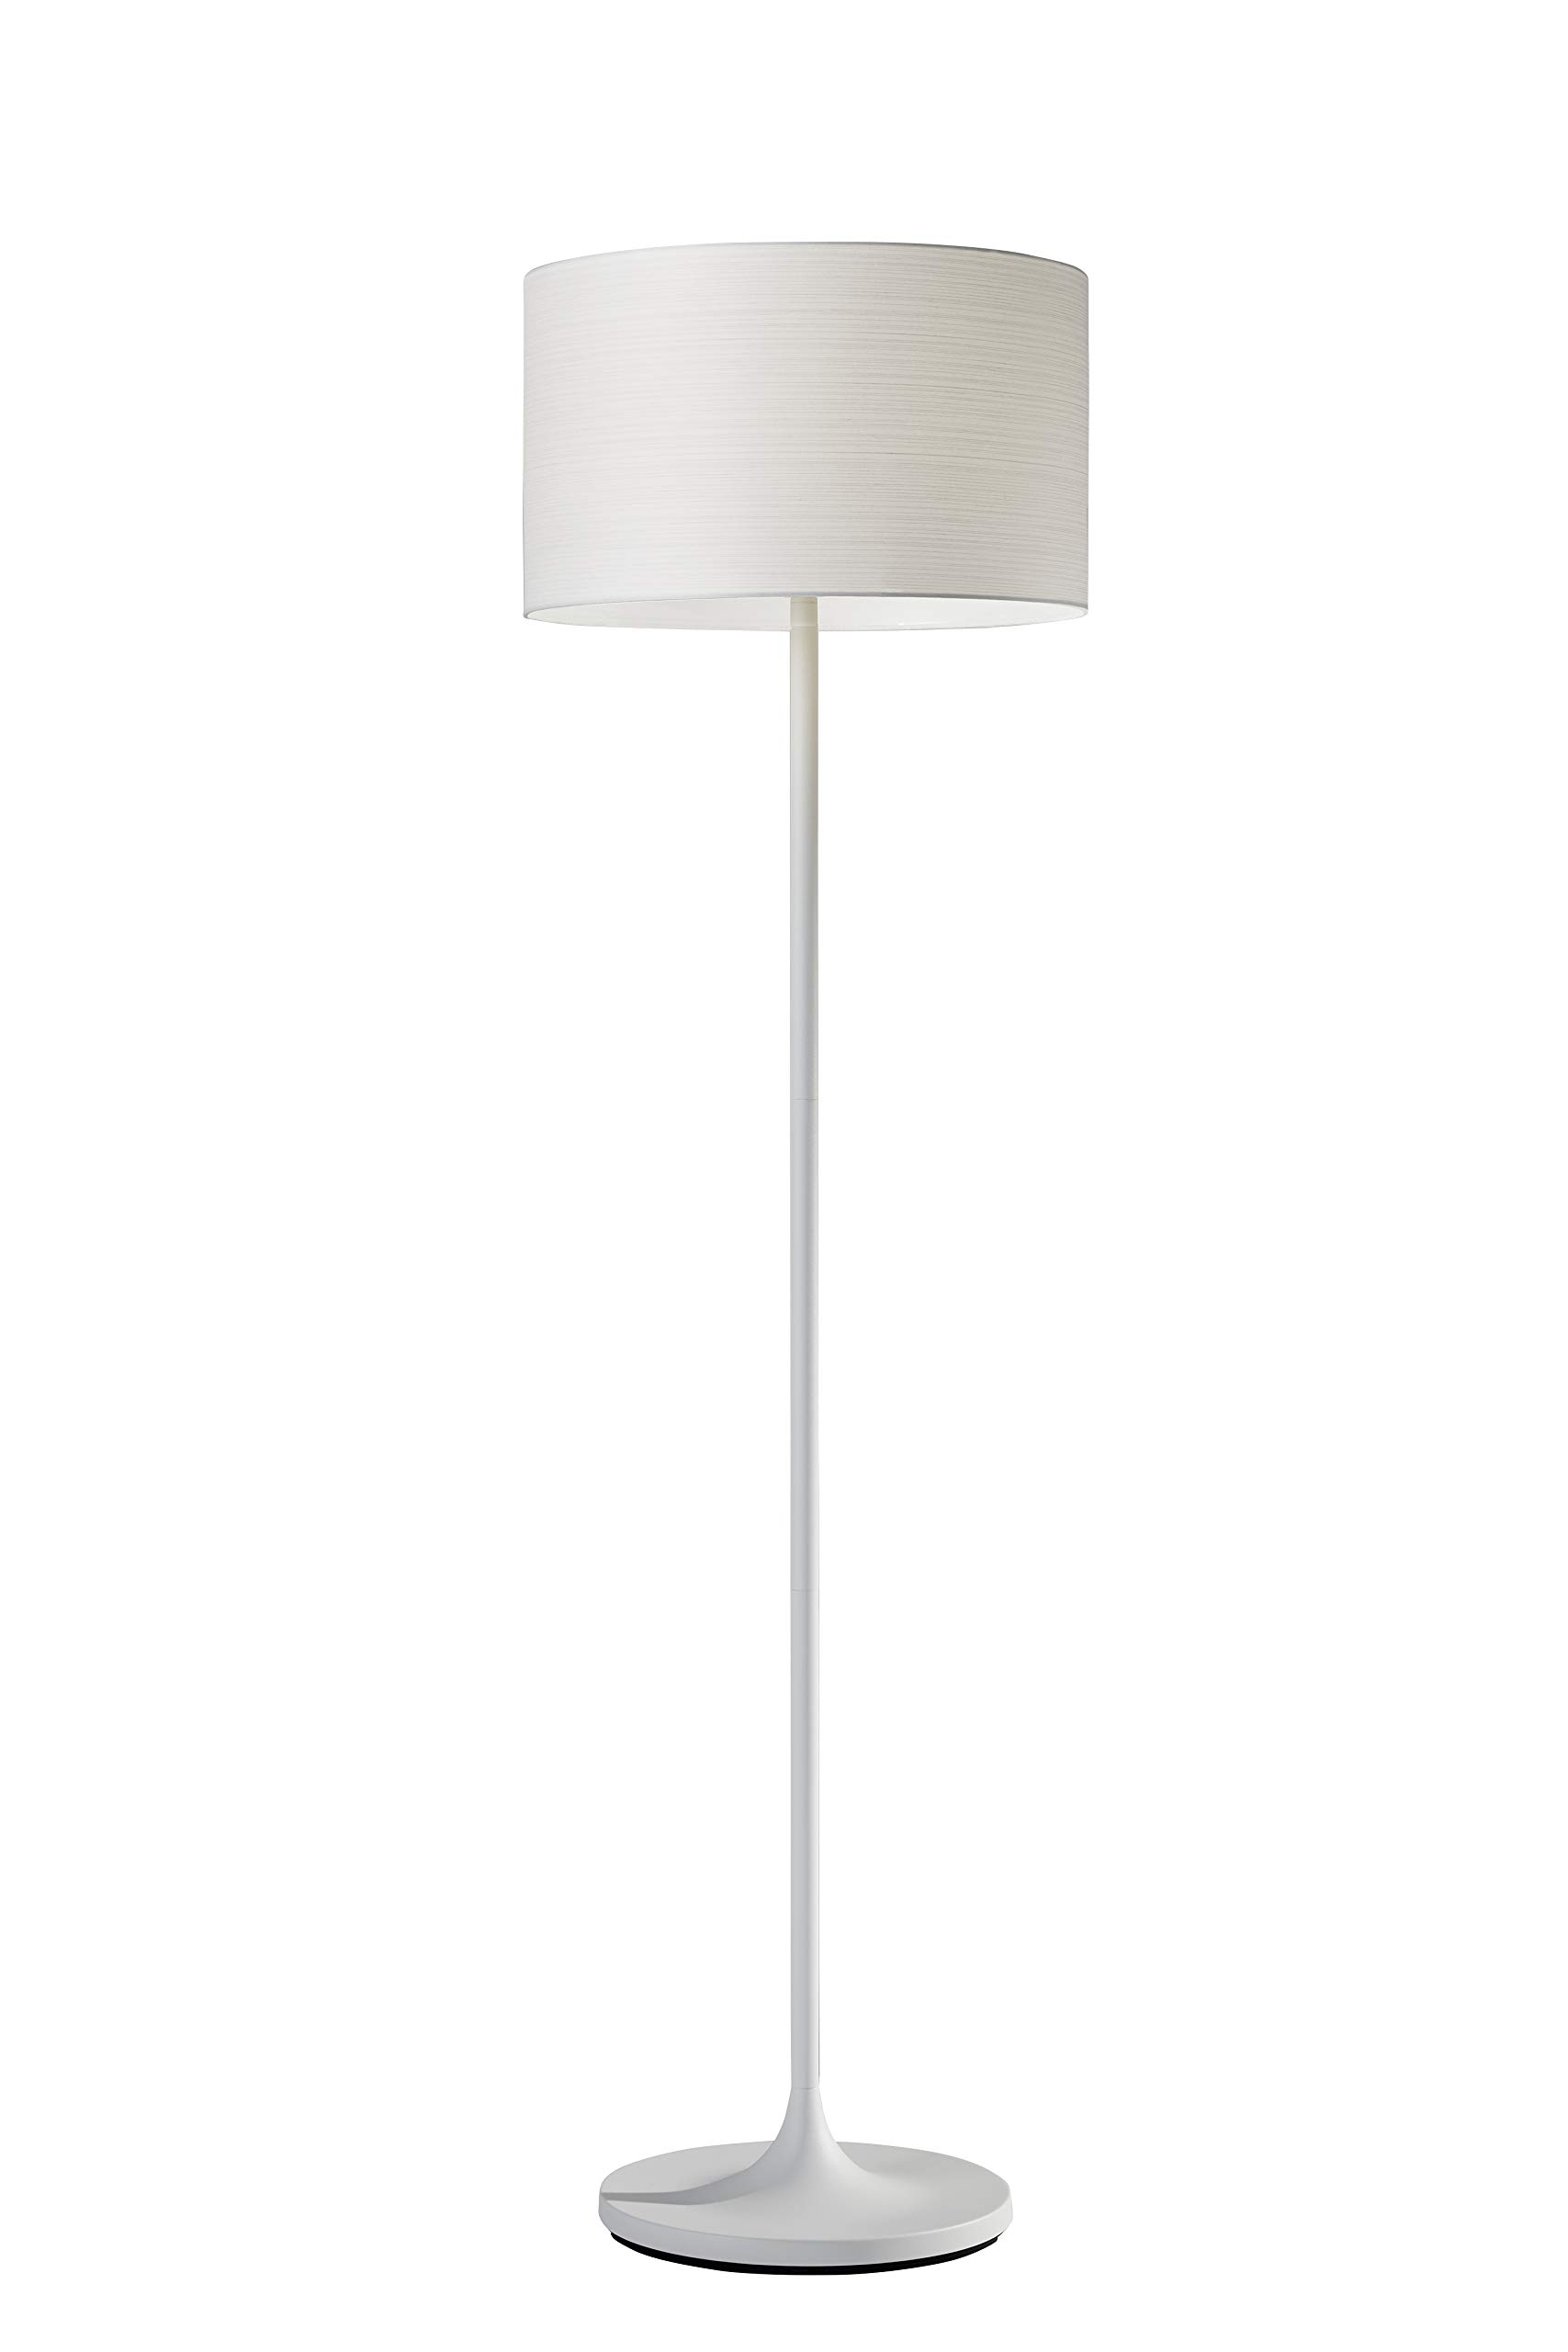 Adesso 6237-02 Oslo Floor Lamp - Corrosion Resistant, Scratch Proof, White Matte Finish Lighting Equipment with Metal Body. Tools & Home Improvement by Adesso